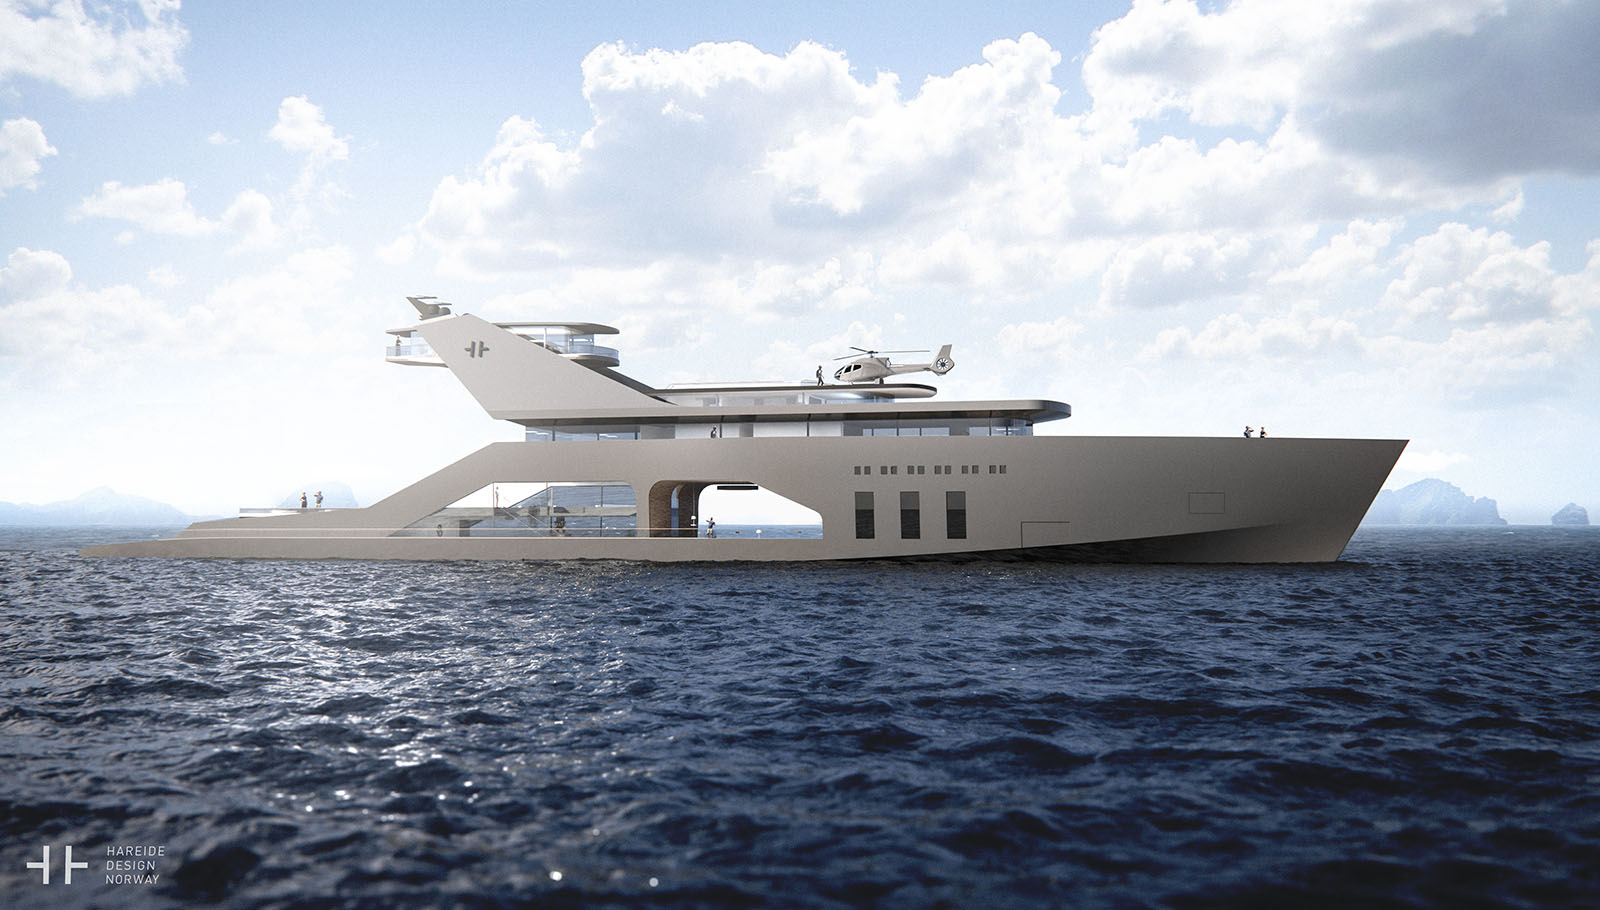 The 108M Luxury Yacht Concept With It's Own Private Beach 3